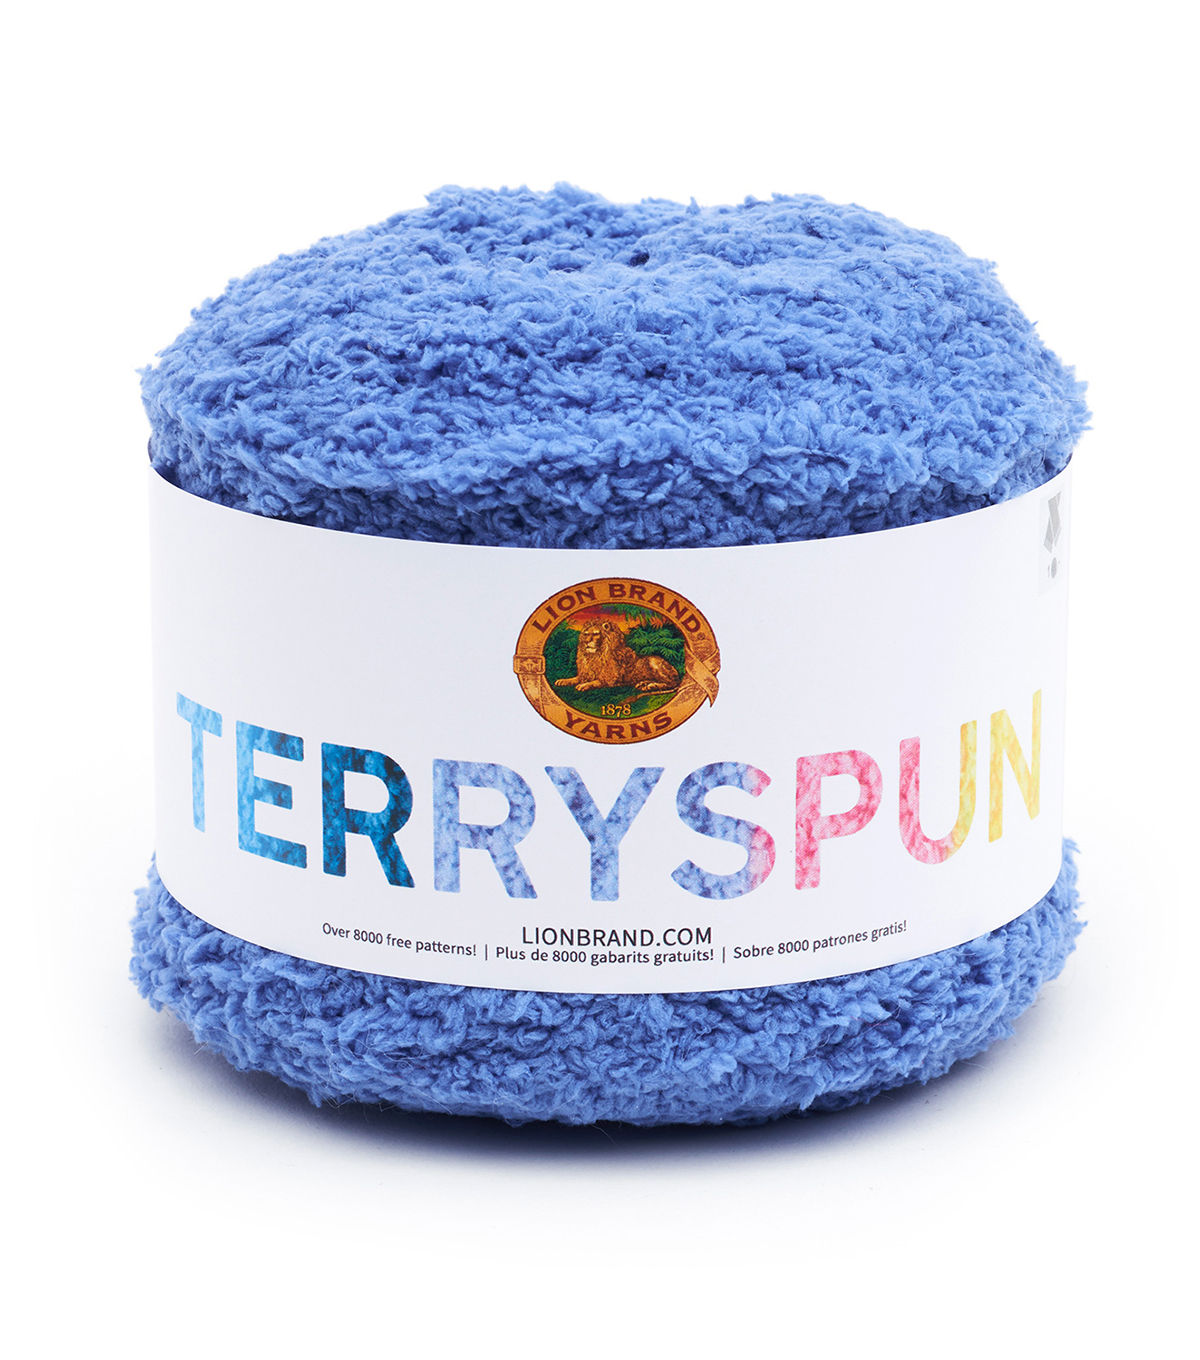 Lion Brand Terryspun Yarn, Blue Chips